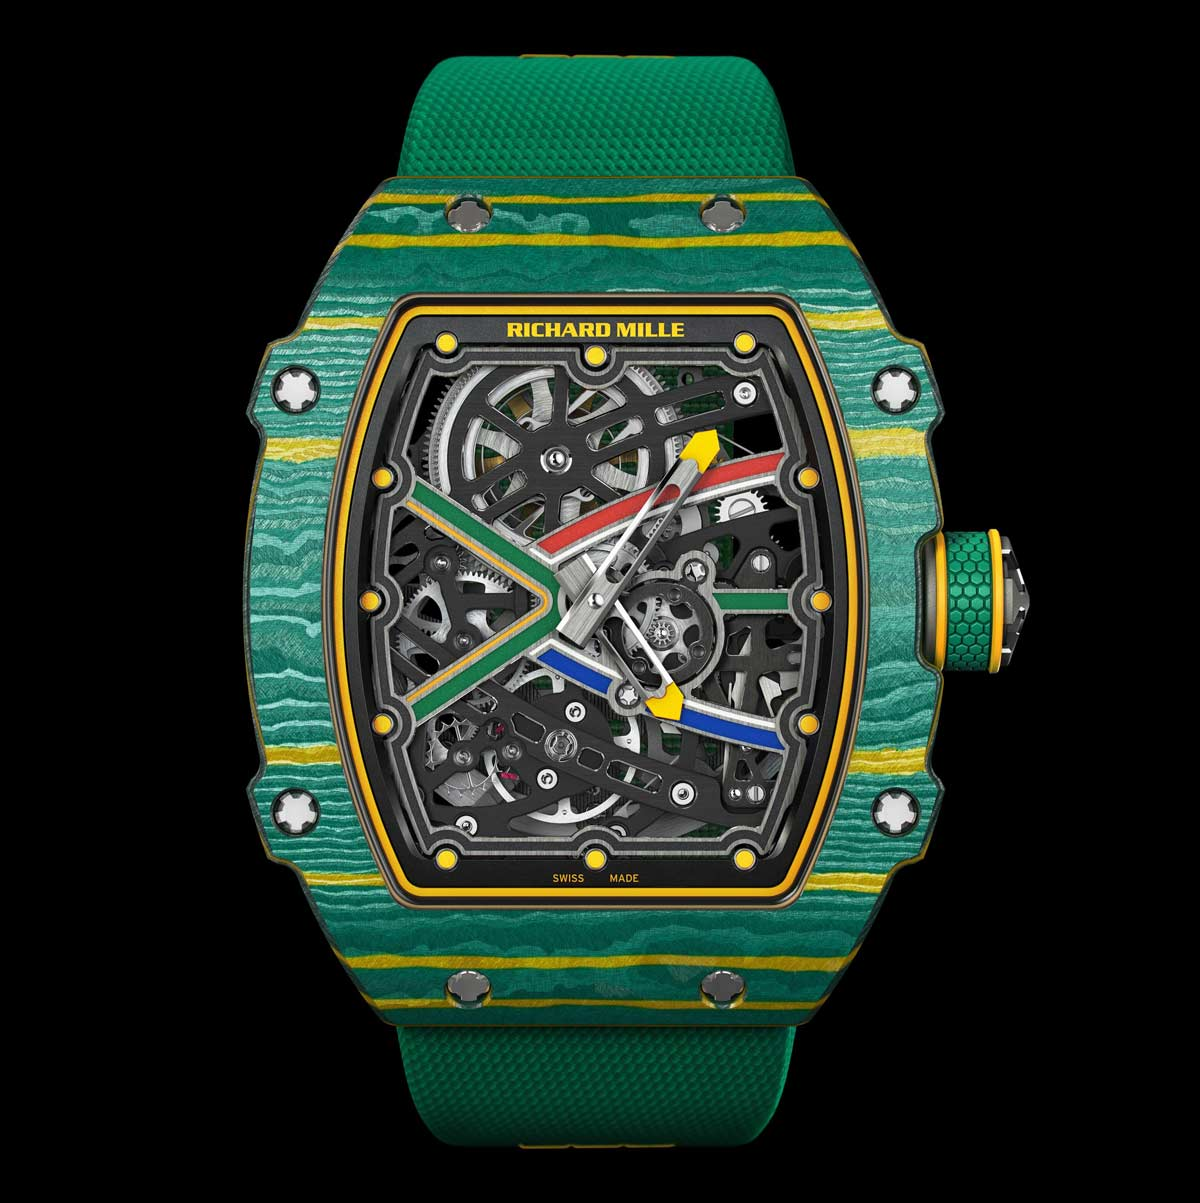 Richard Mille Rm 67 02 Automatic Time And Watches